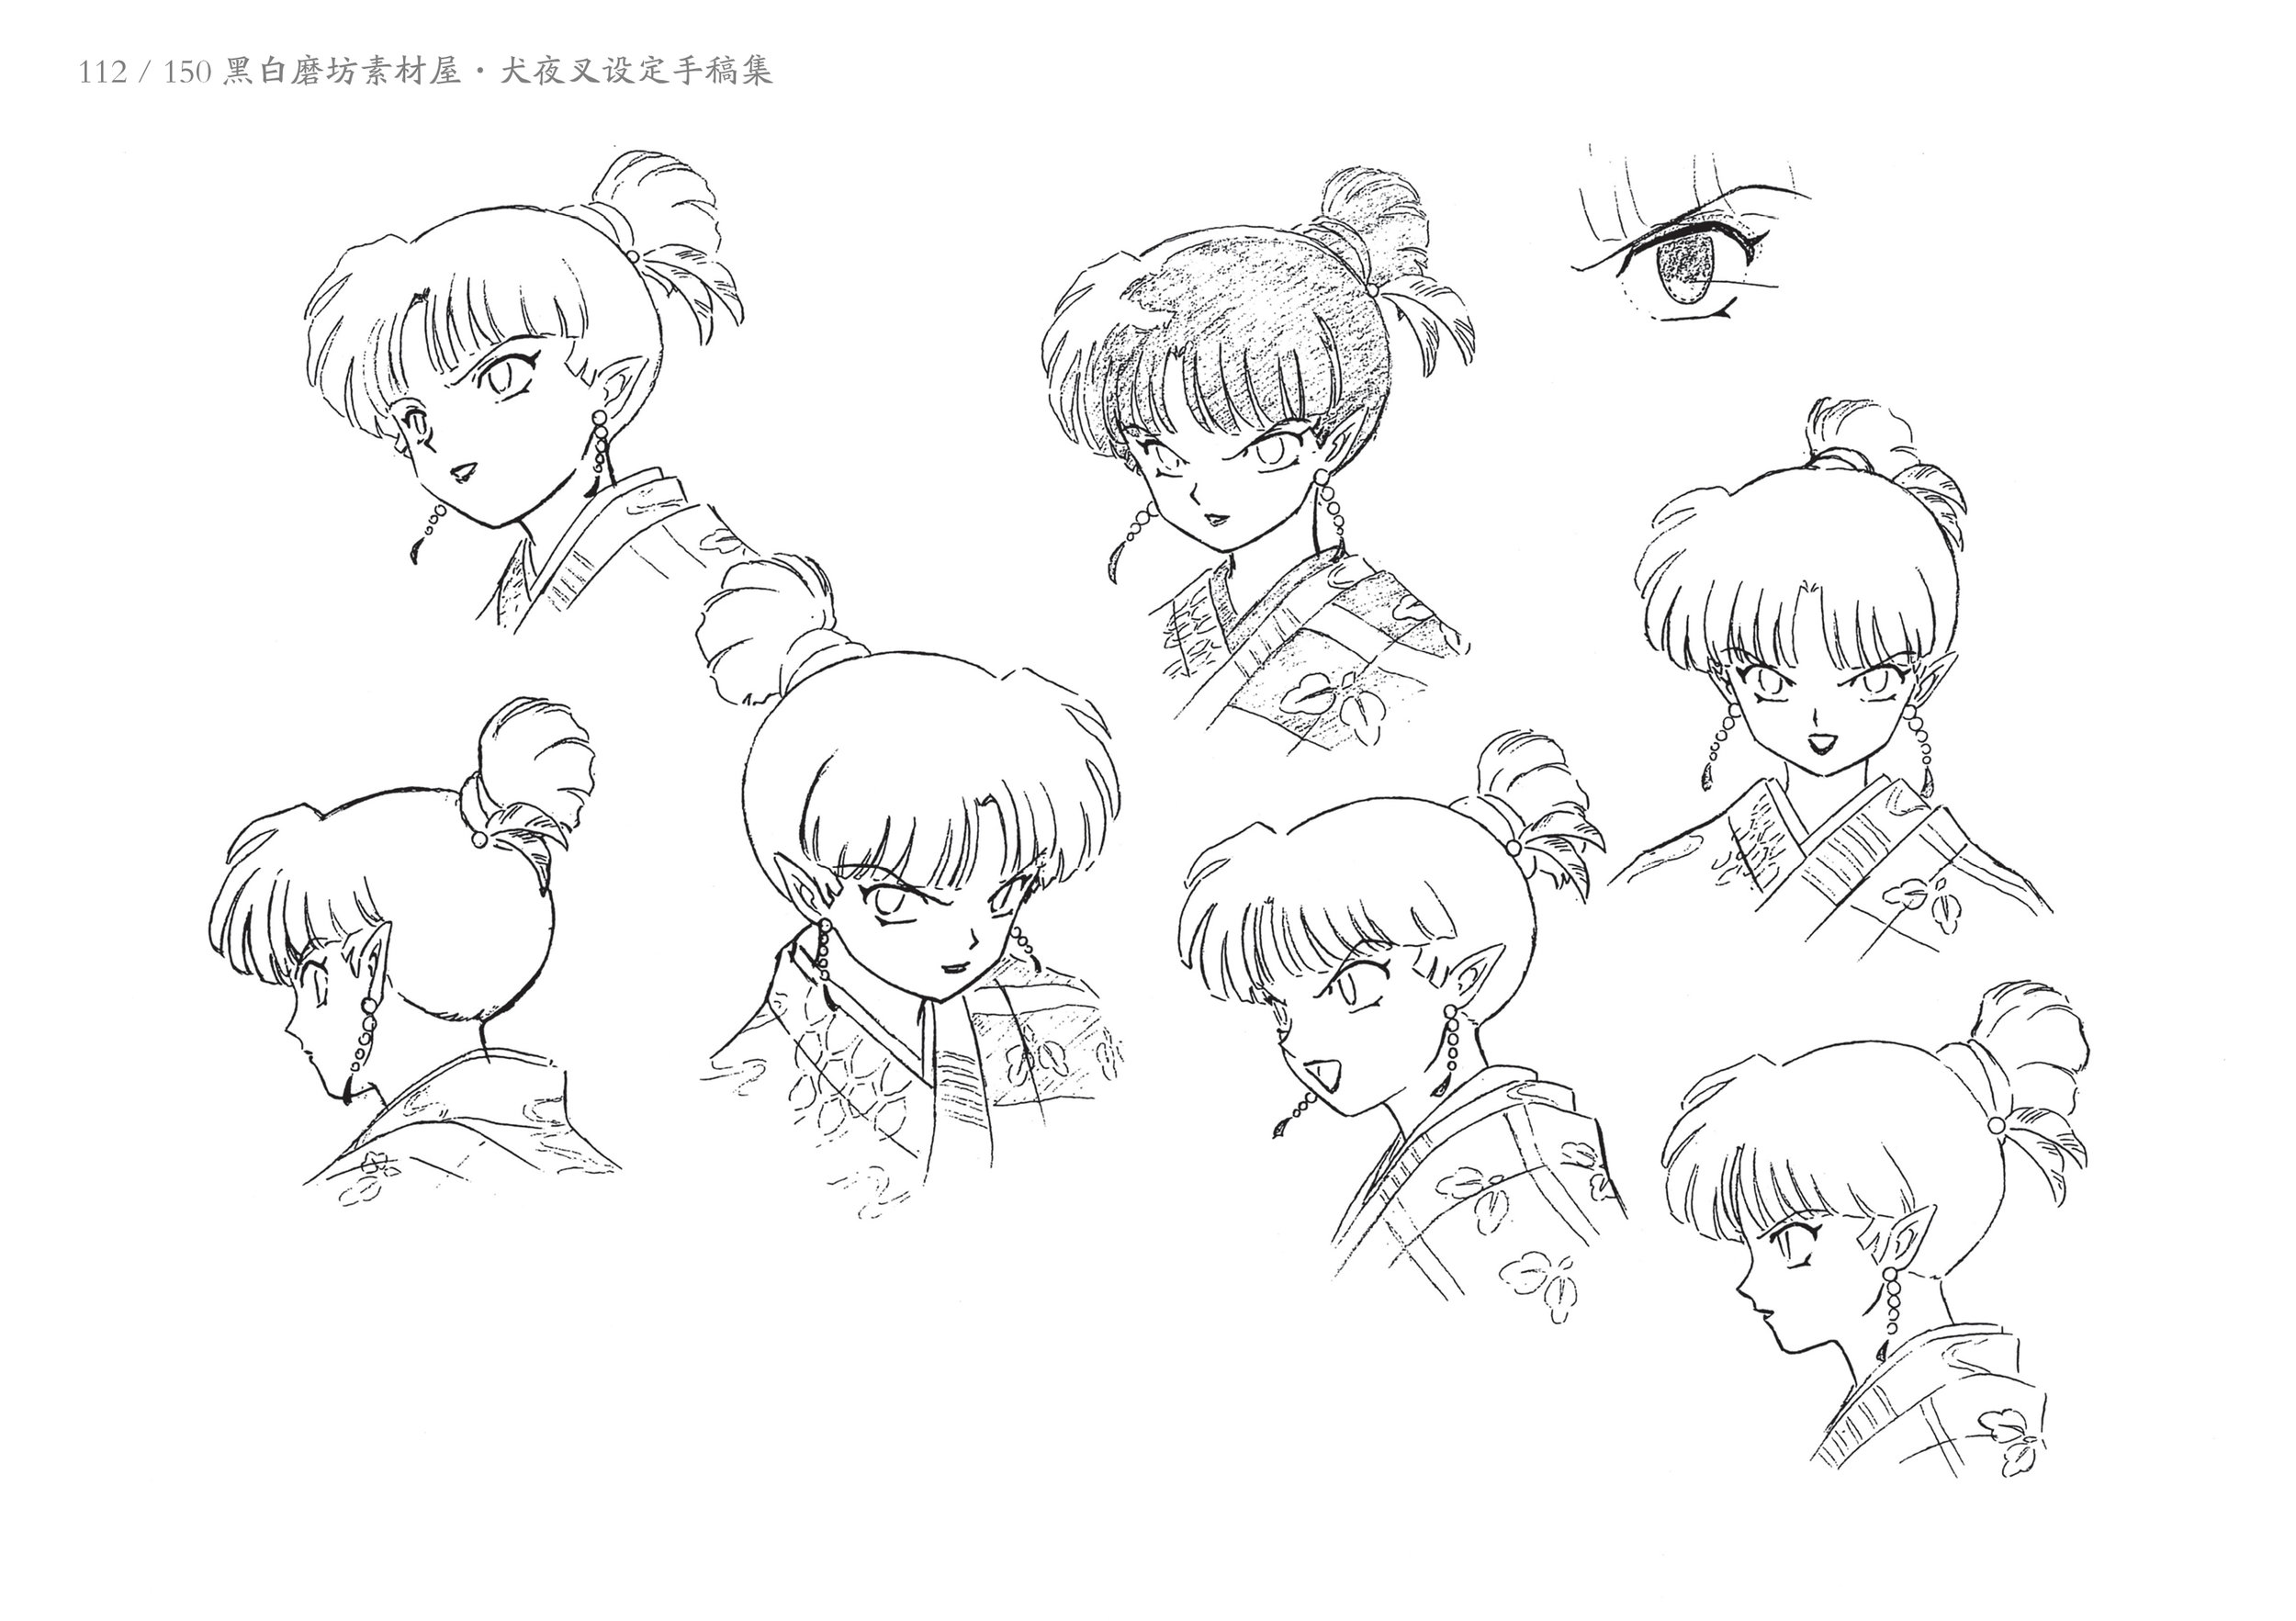 Art of the Inuyasha A - 101.jpg